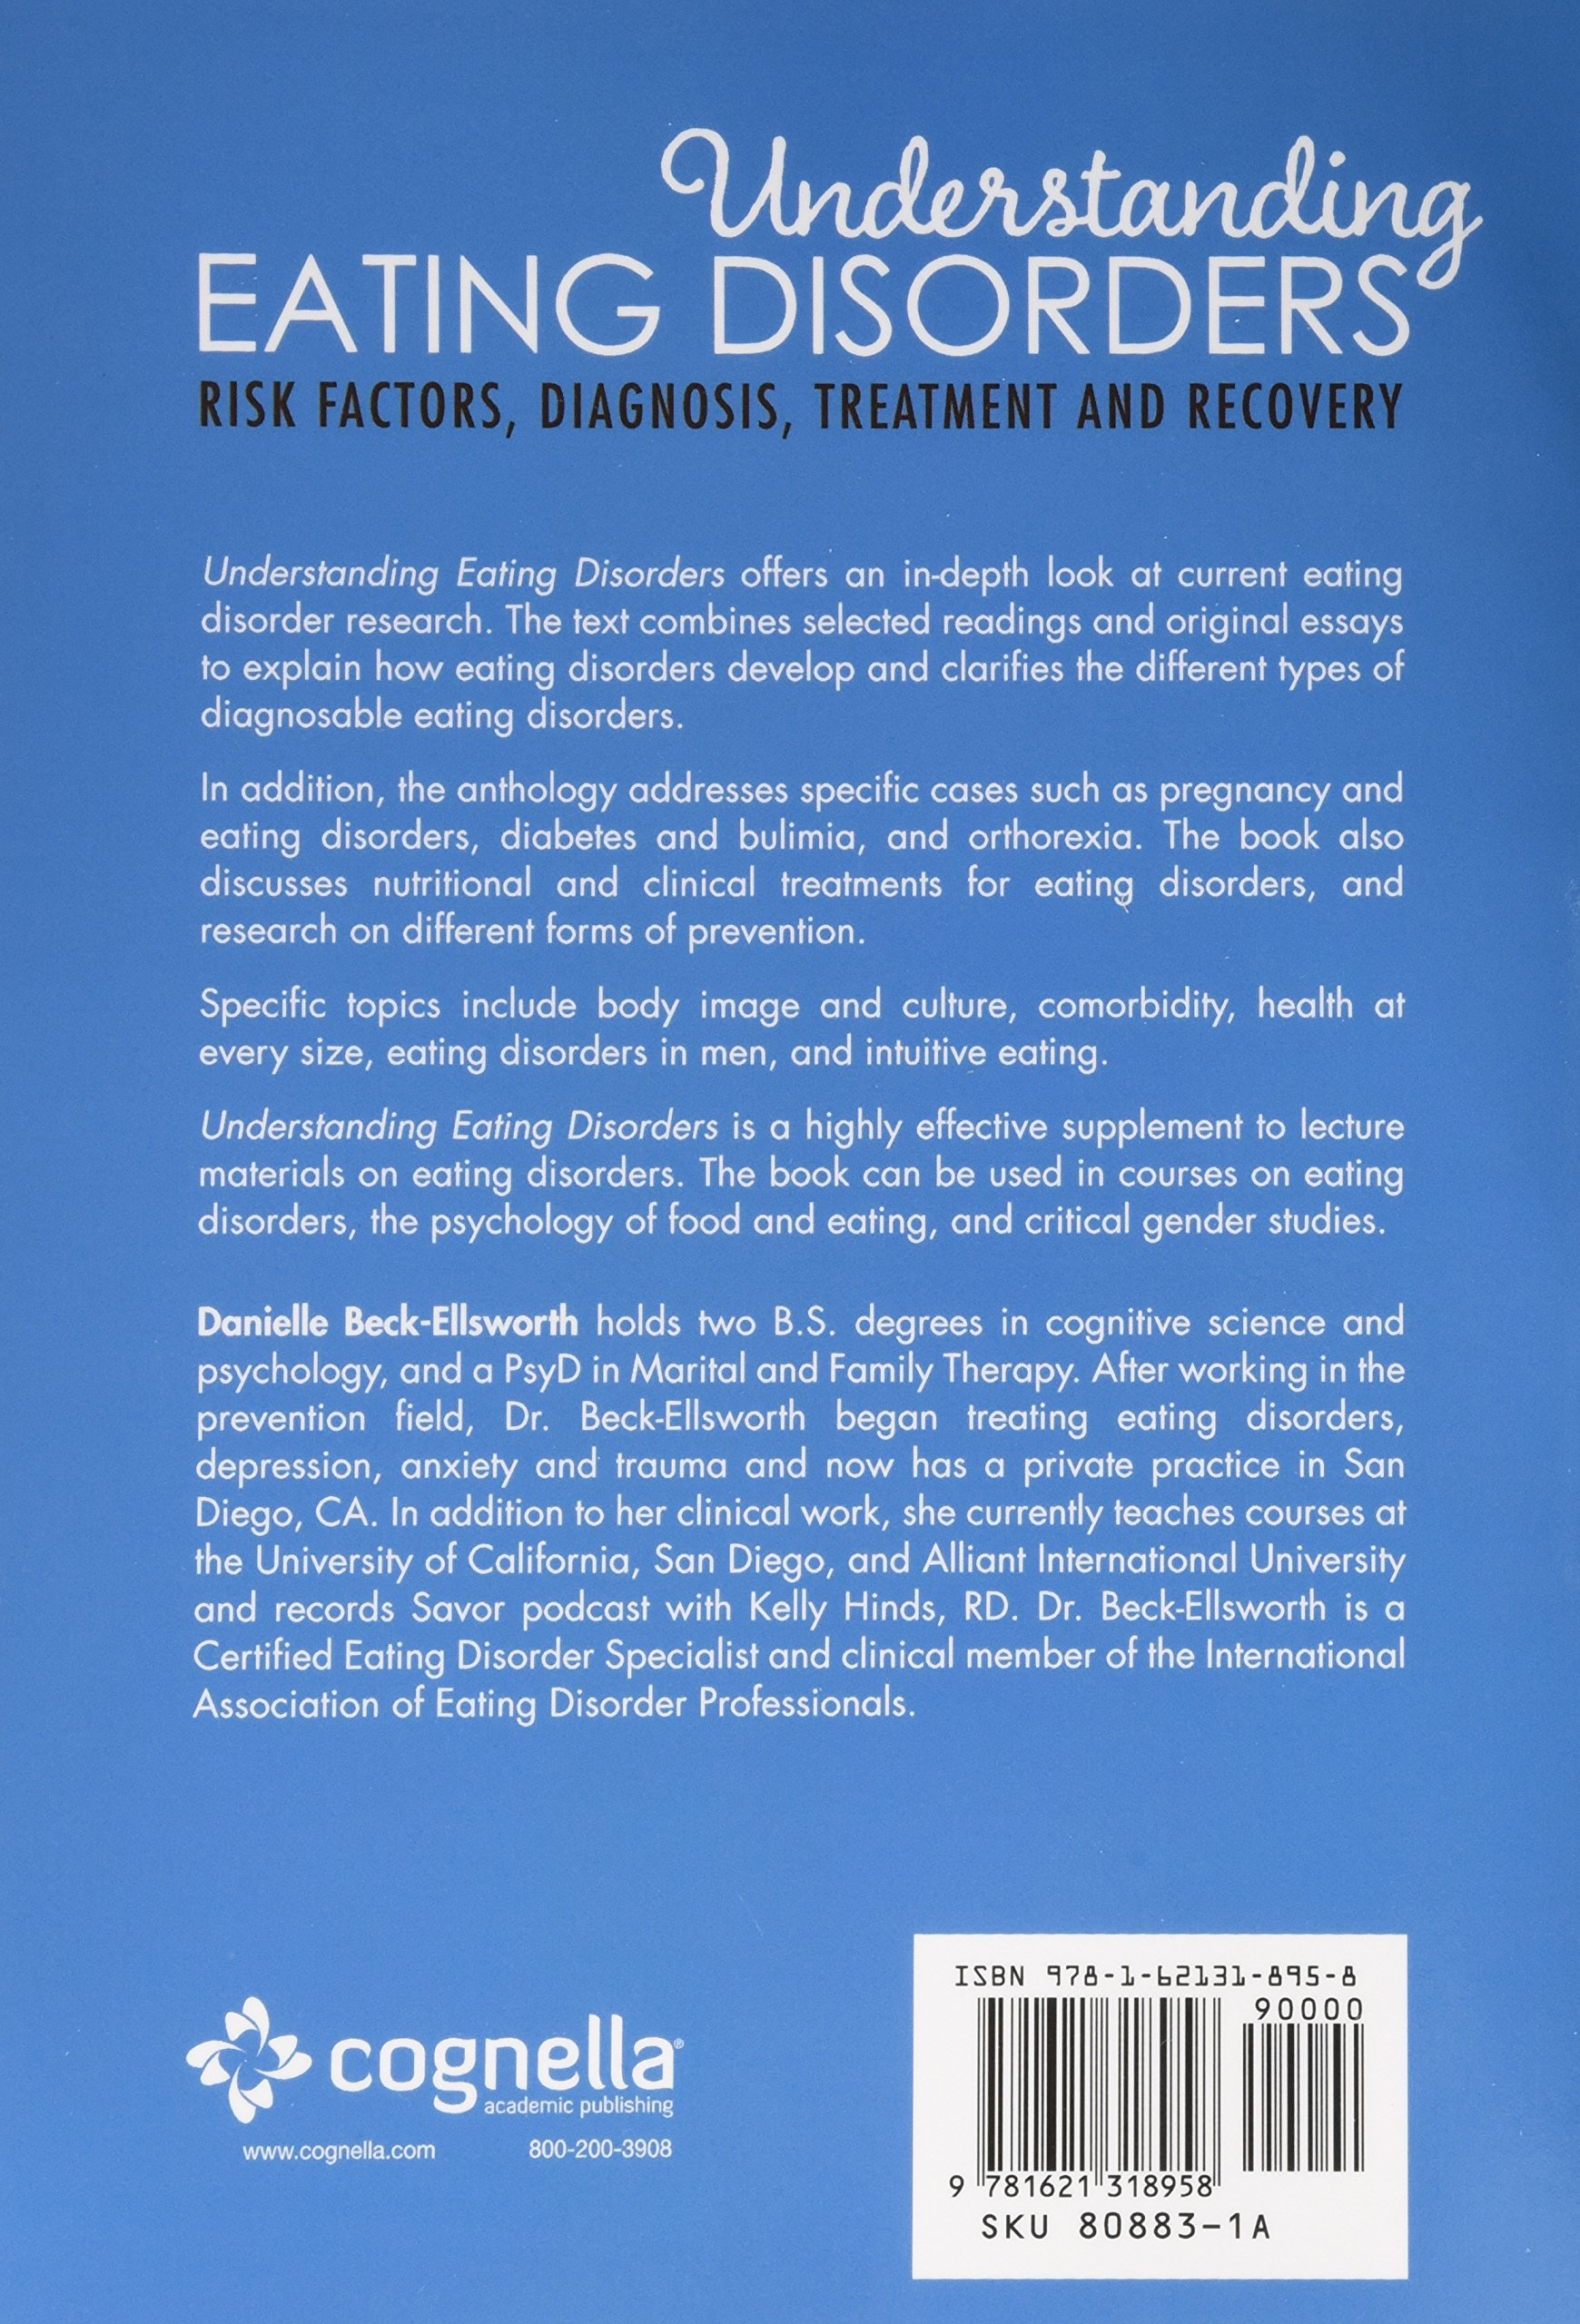 understanding eating disorders risk factors diagnosis treatment understanding eating disorders risk factors diagnosis treatment and recovery danielle beck ellsworth 9781621318958 com books